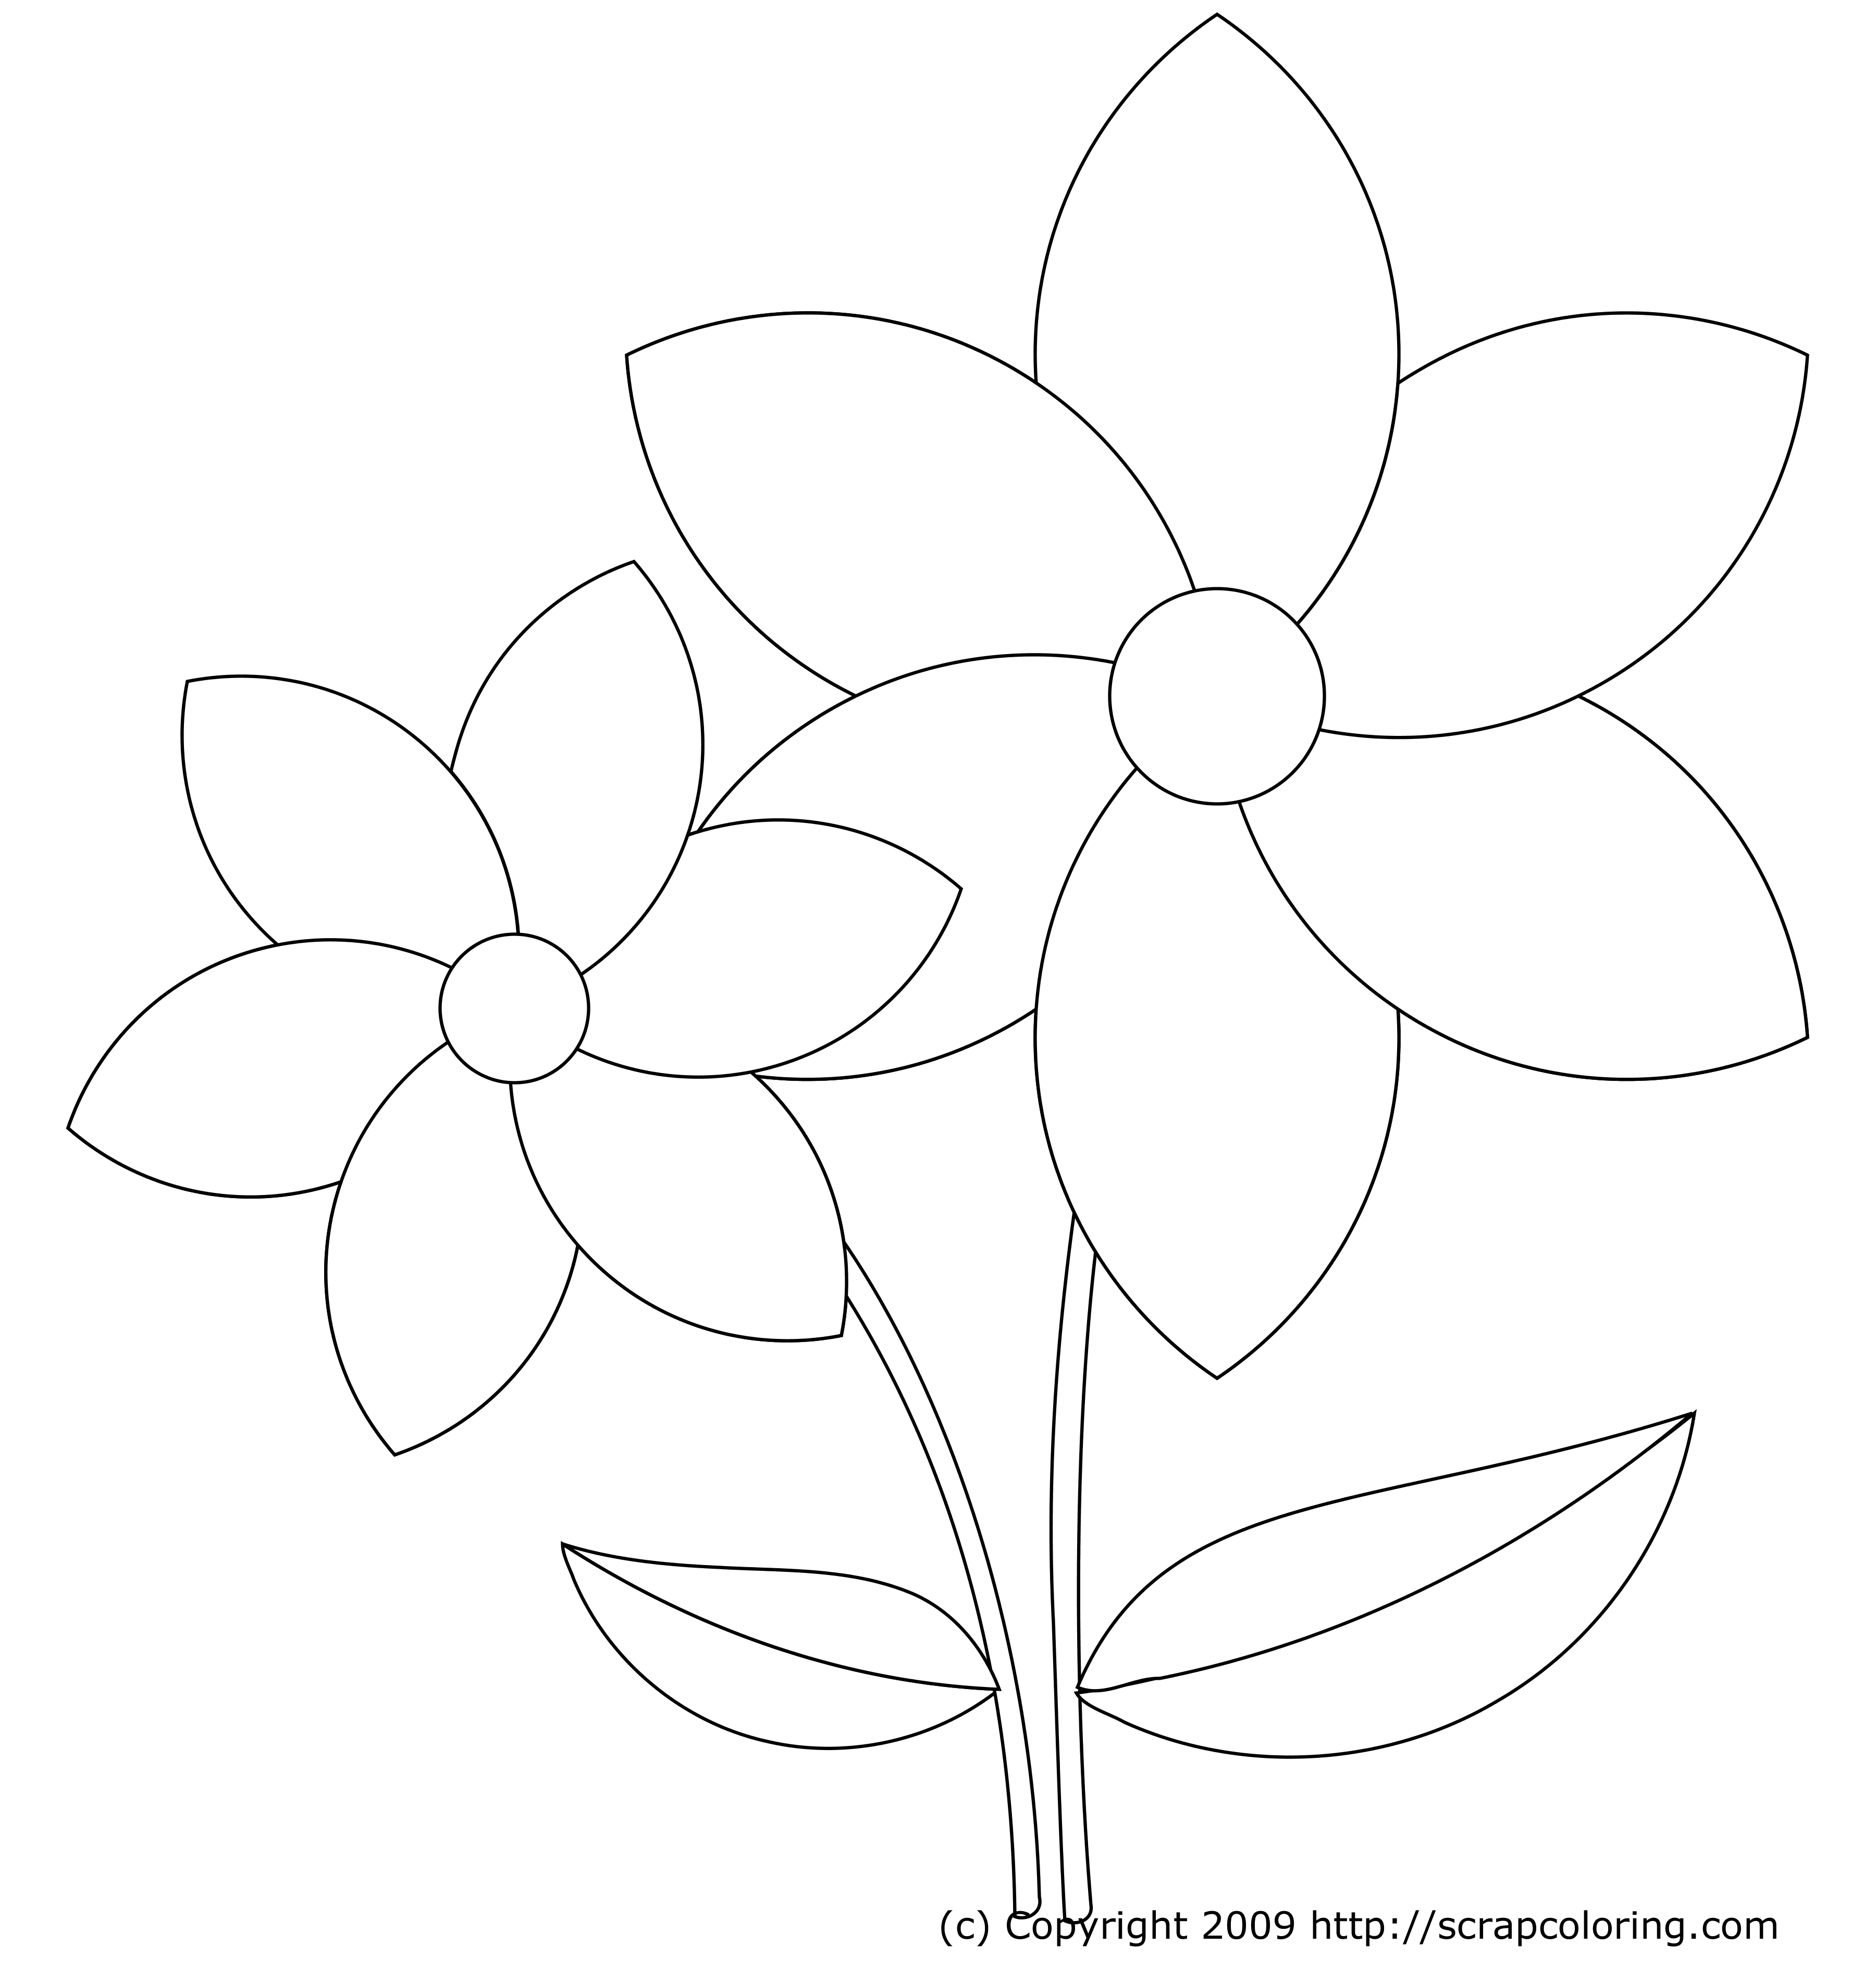 Colouring pages of flowers - Flower Coloring Pages Yahoo Image Search Results